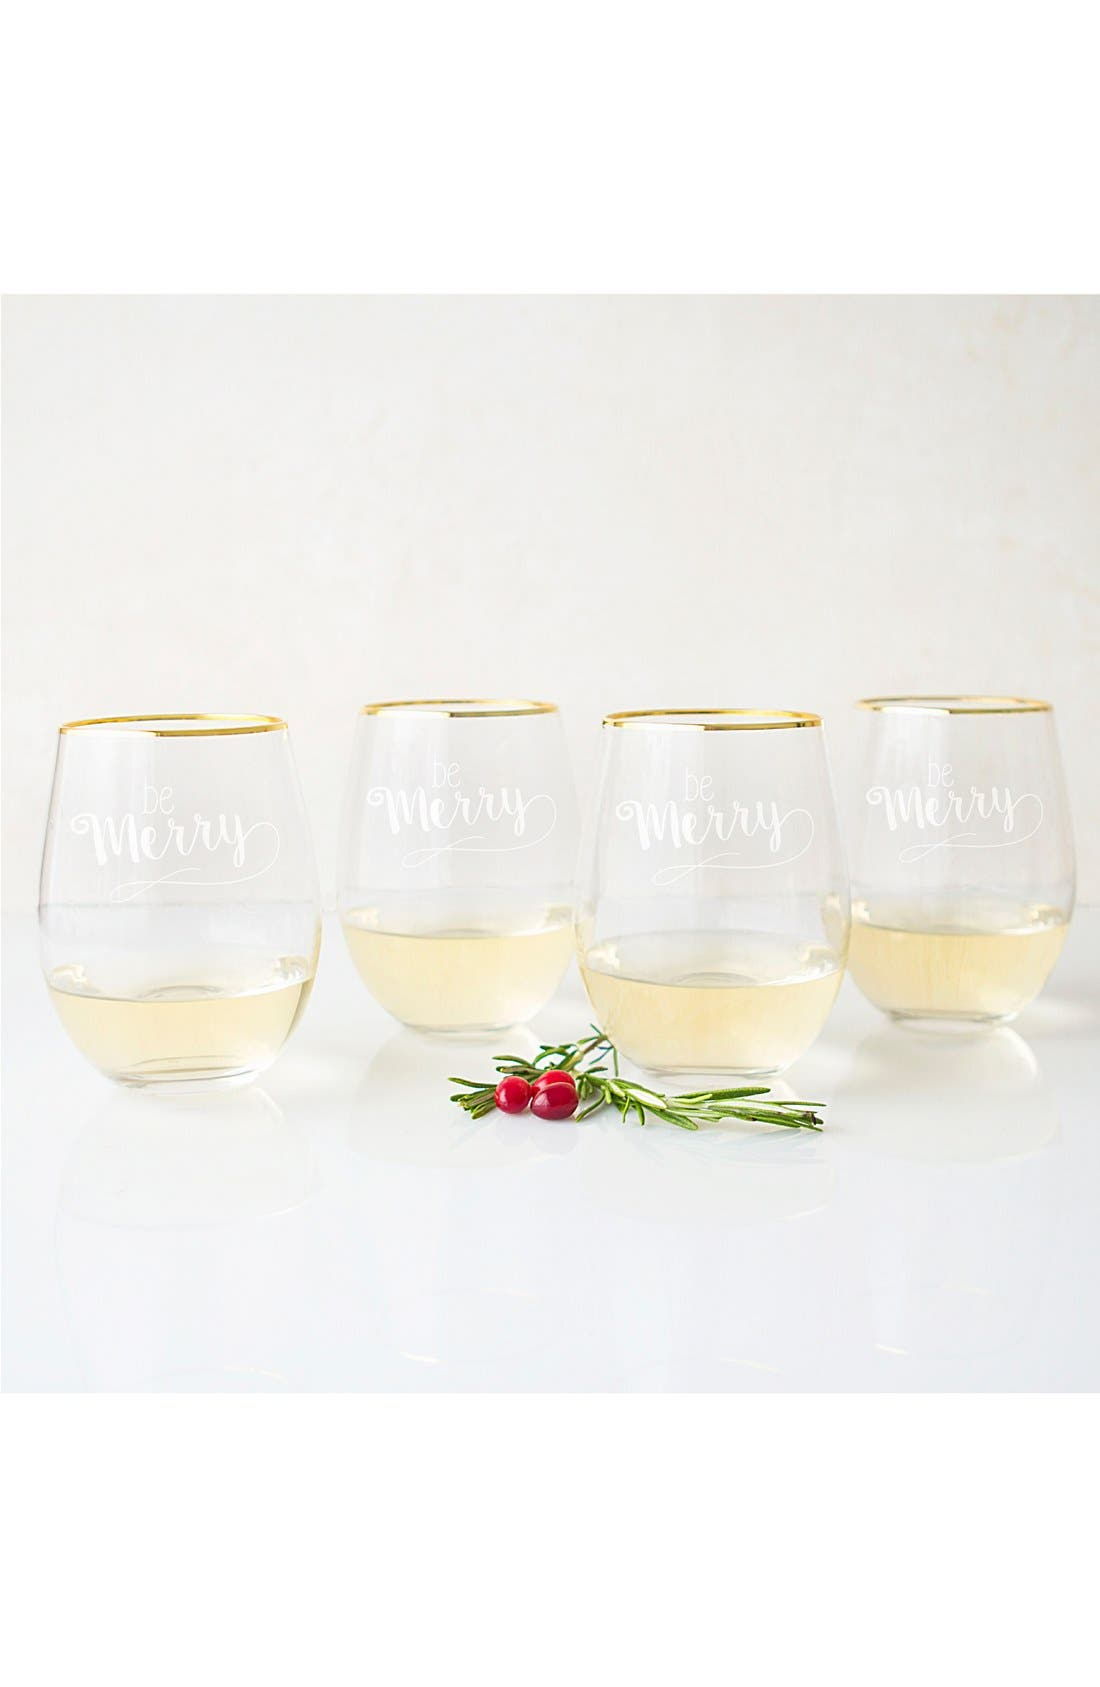 Be Merry Set of 4 Stemless Wine Glasses,                             Alternate thumbnail 3, color,                             710